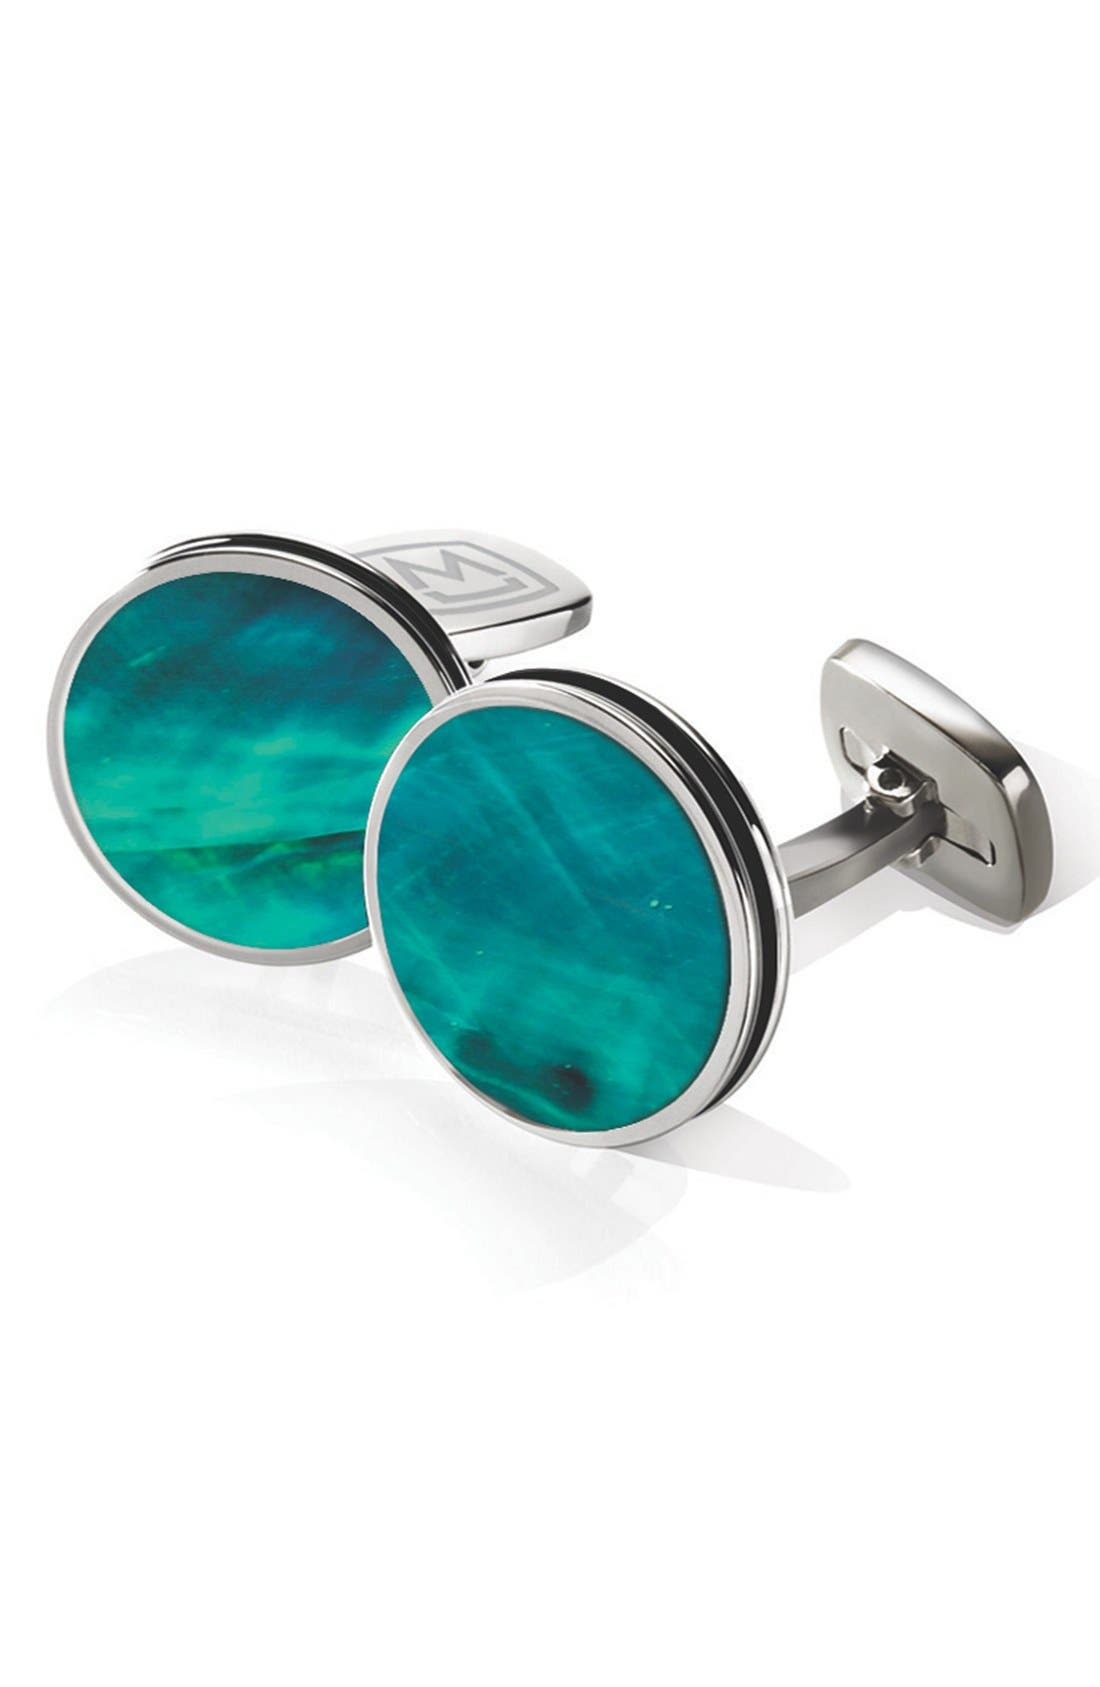 Stainless Steel Cuff Links,                             Main thumbnail 1, color,                             040